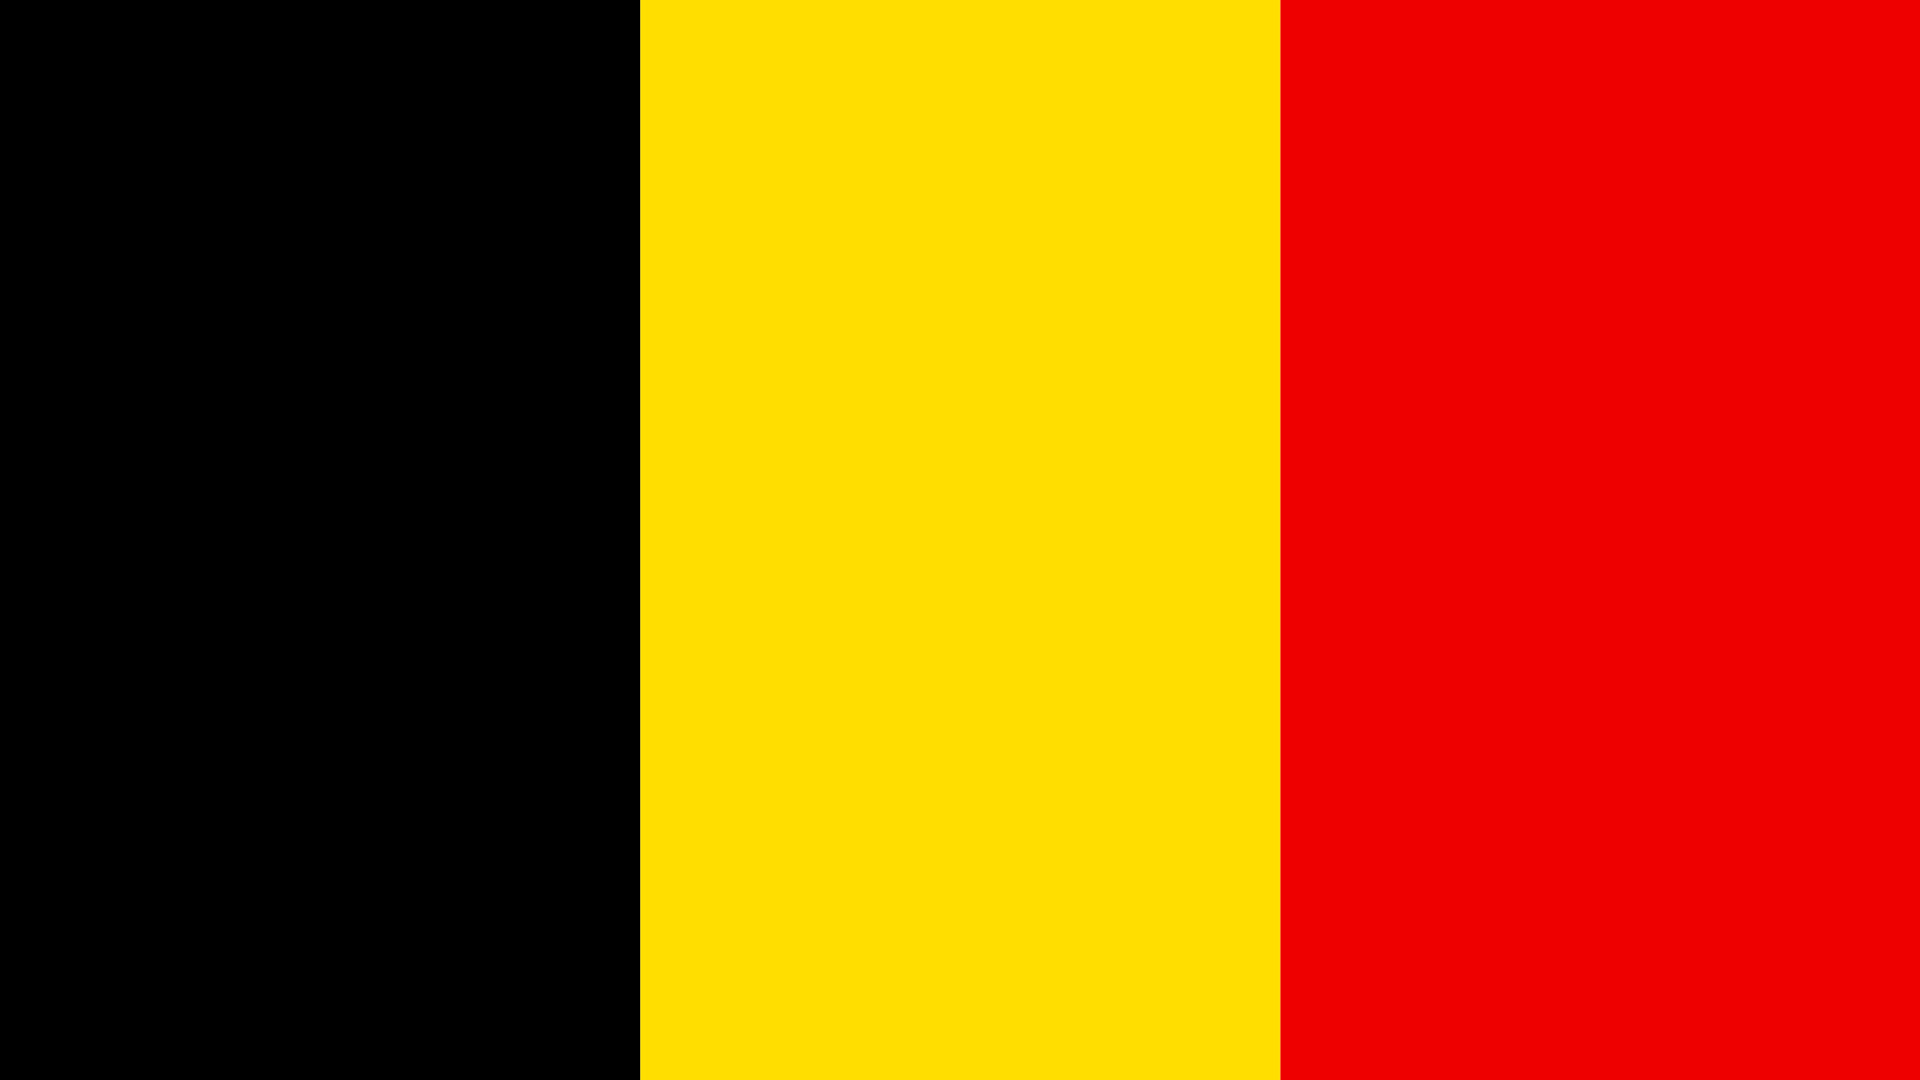 belgium flag wallpaper high definition high quality